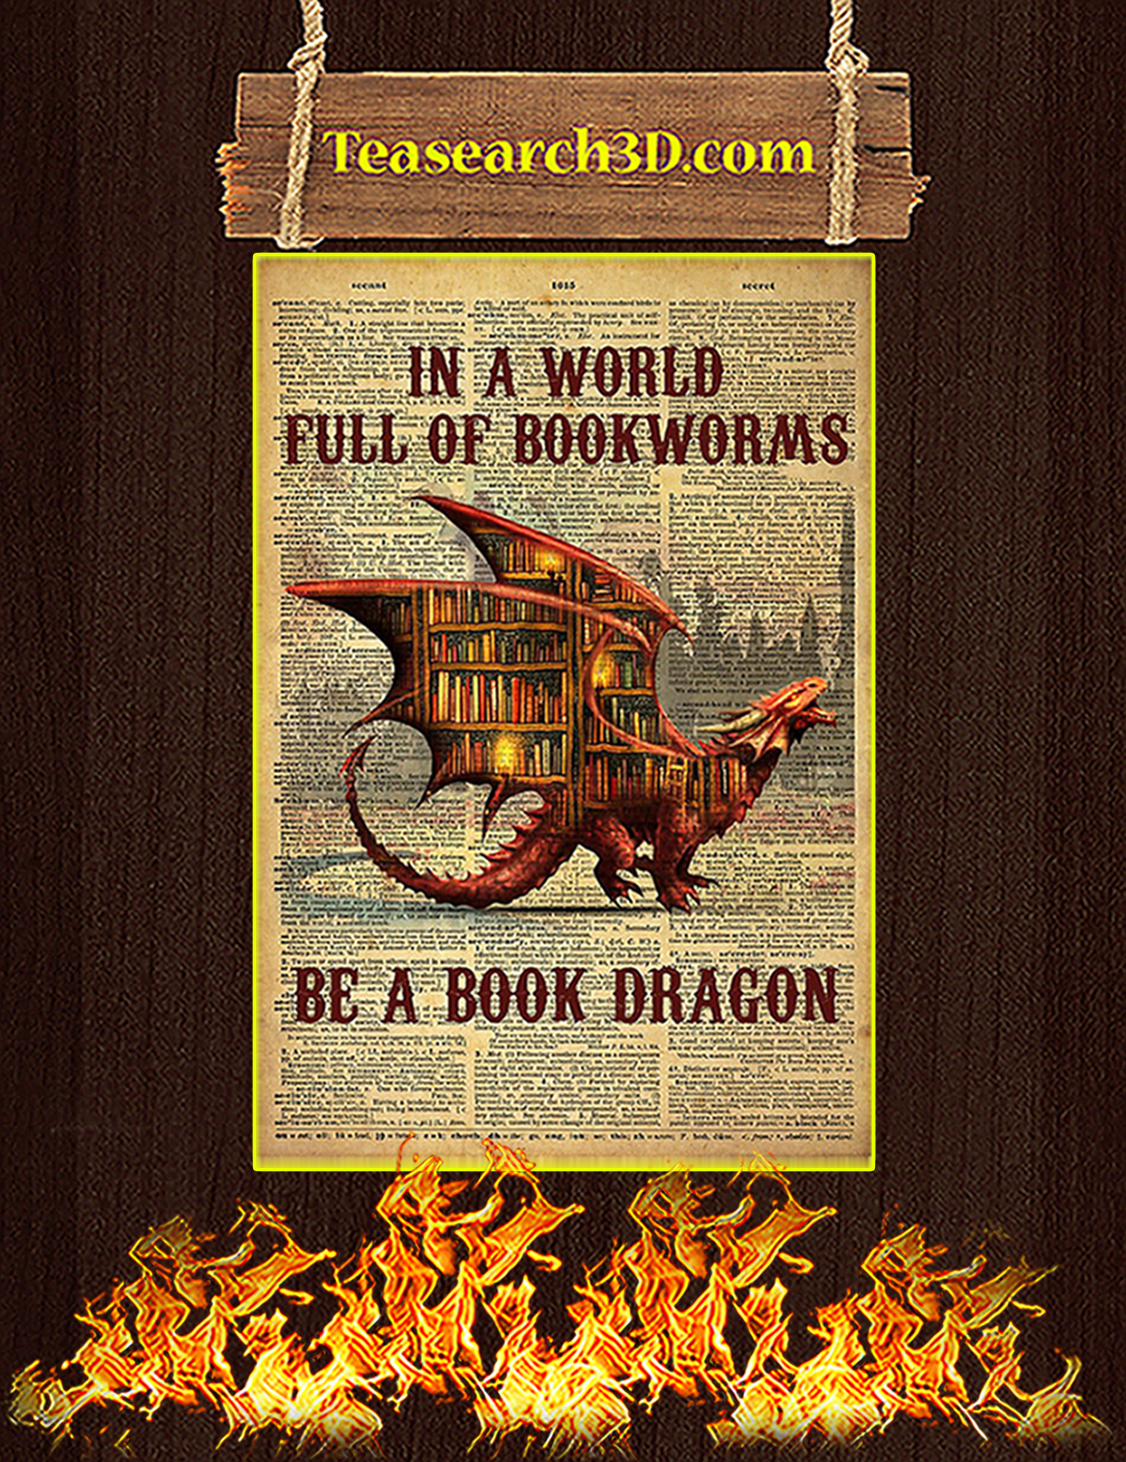 In a world full of bookworms be a book dragon poster A3